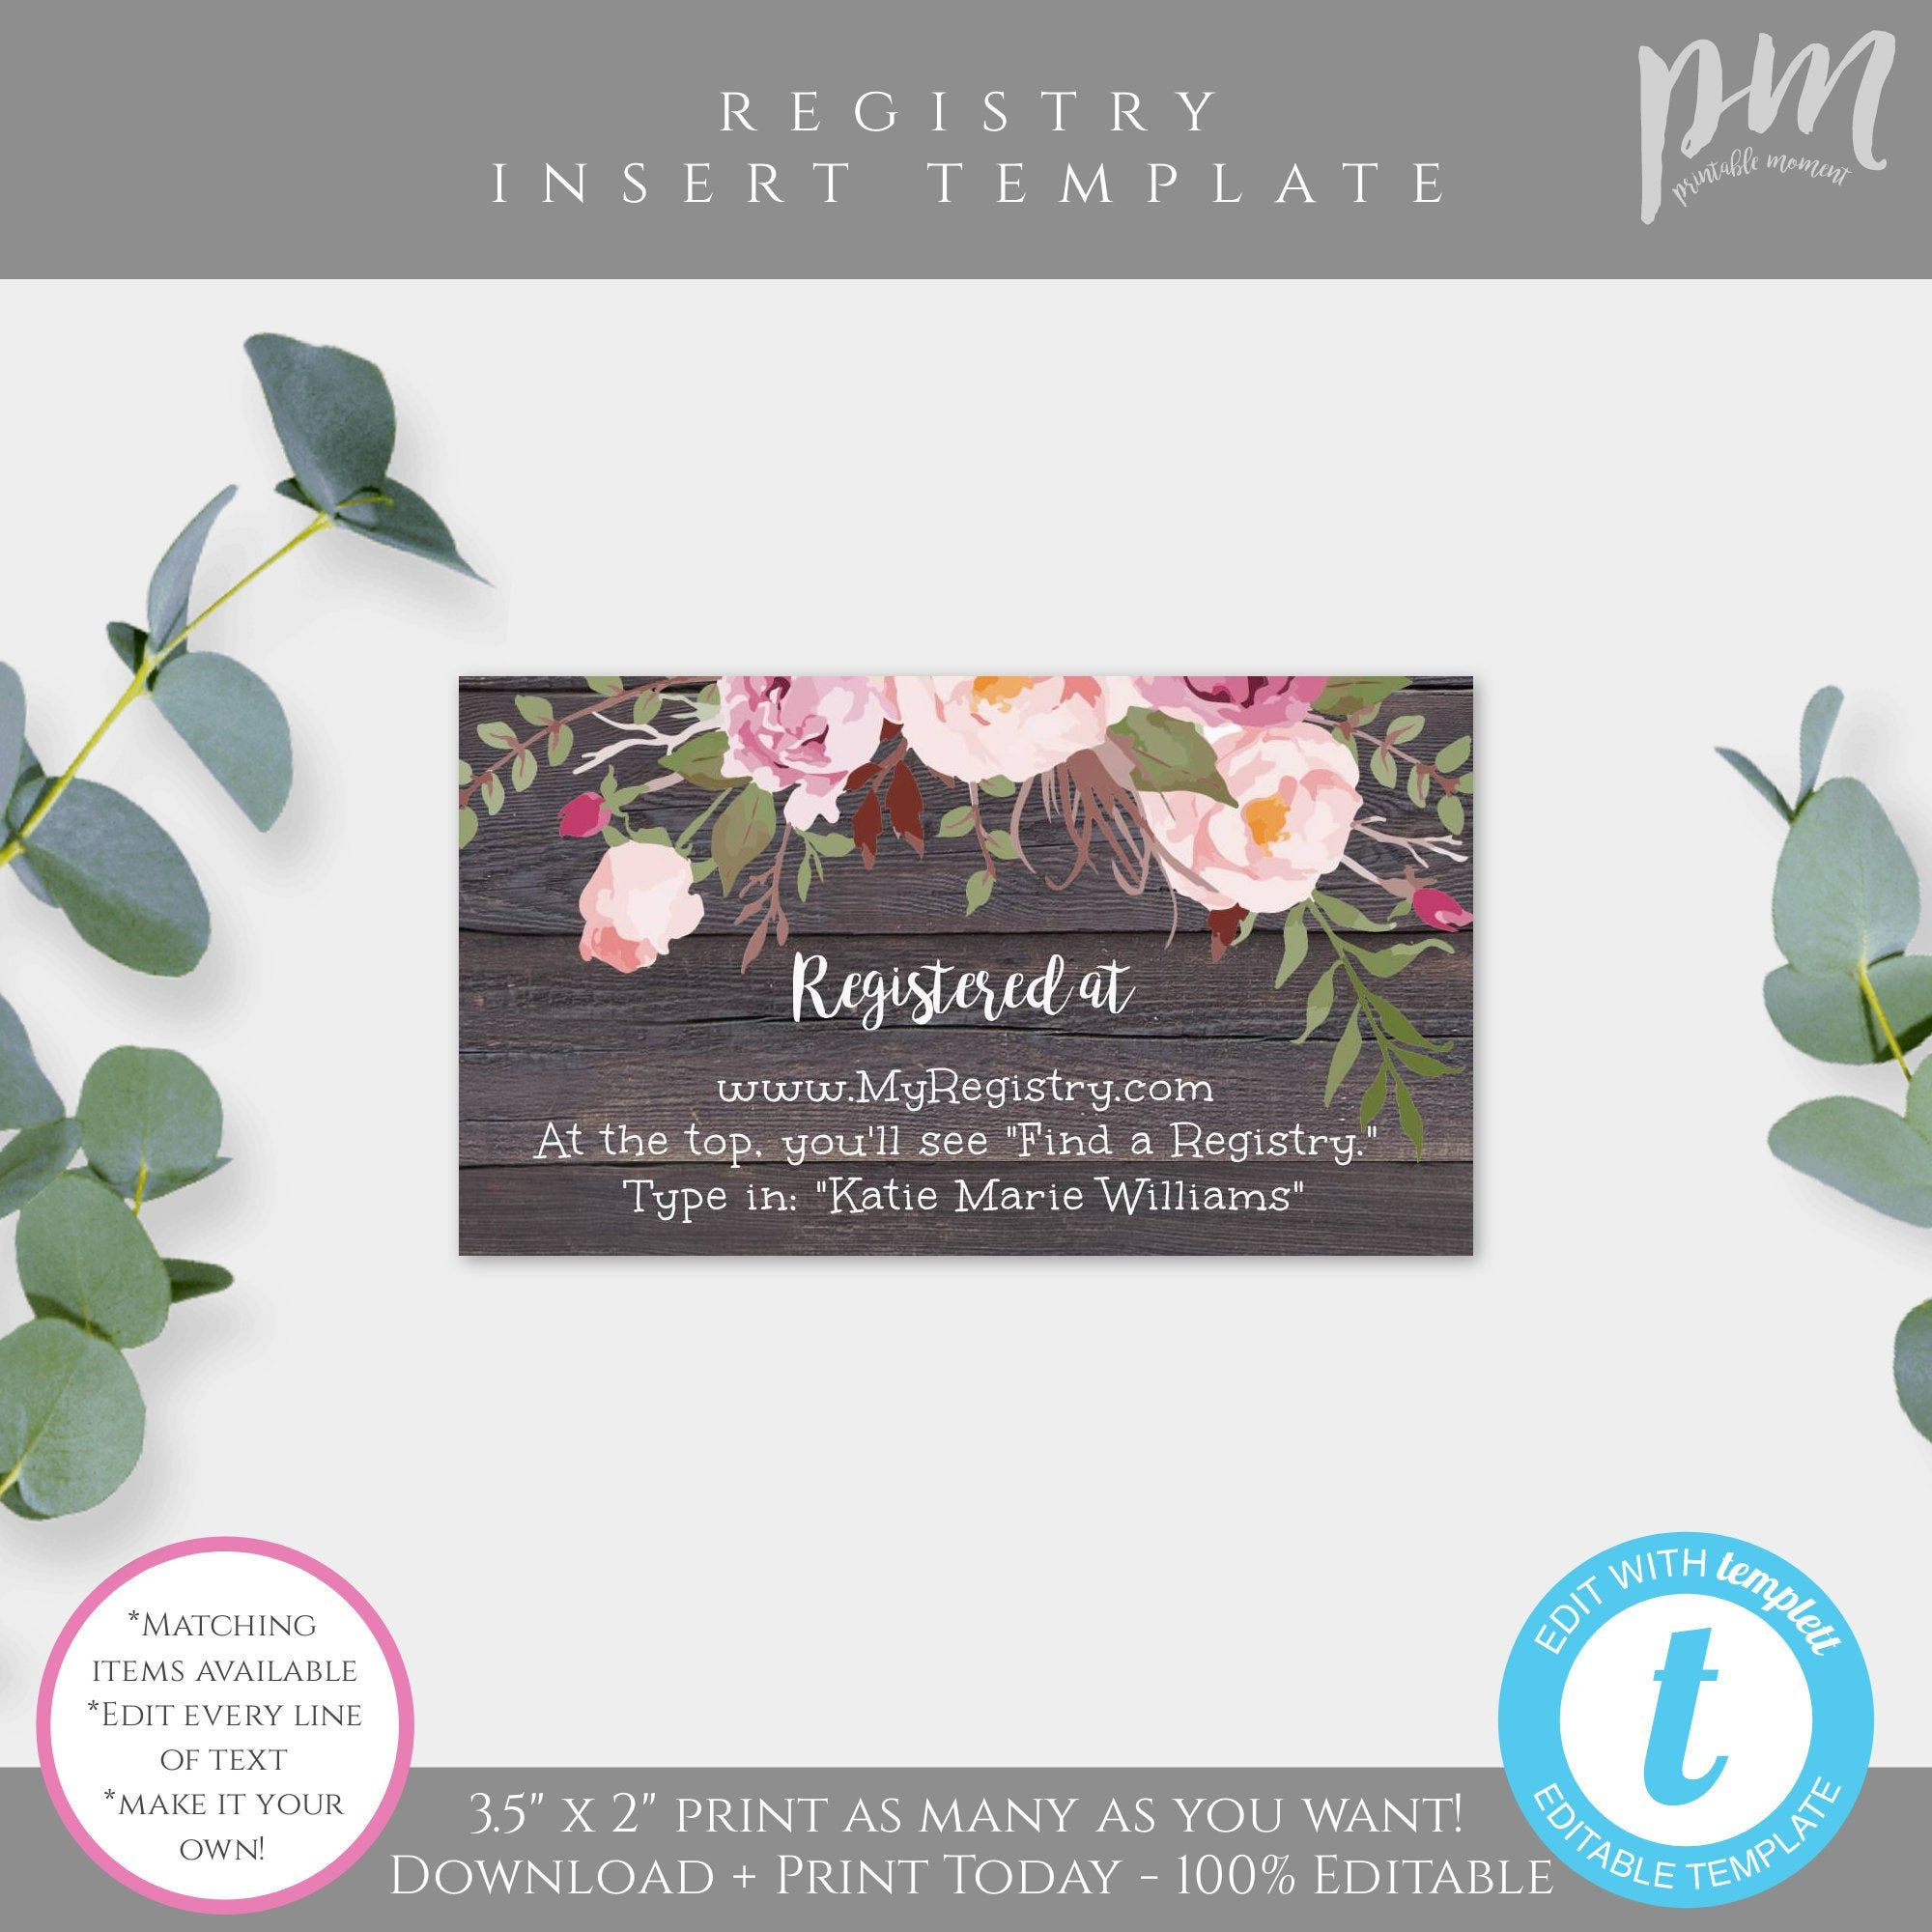 Rustic Floral Registry Card Insert Template Baby Shower Etsy In 2020 Registry Cards Baby Shower Printables Baby Shower Etsy